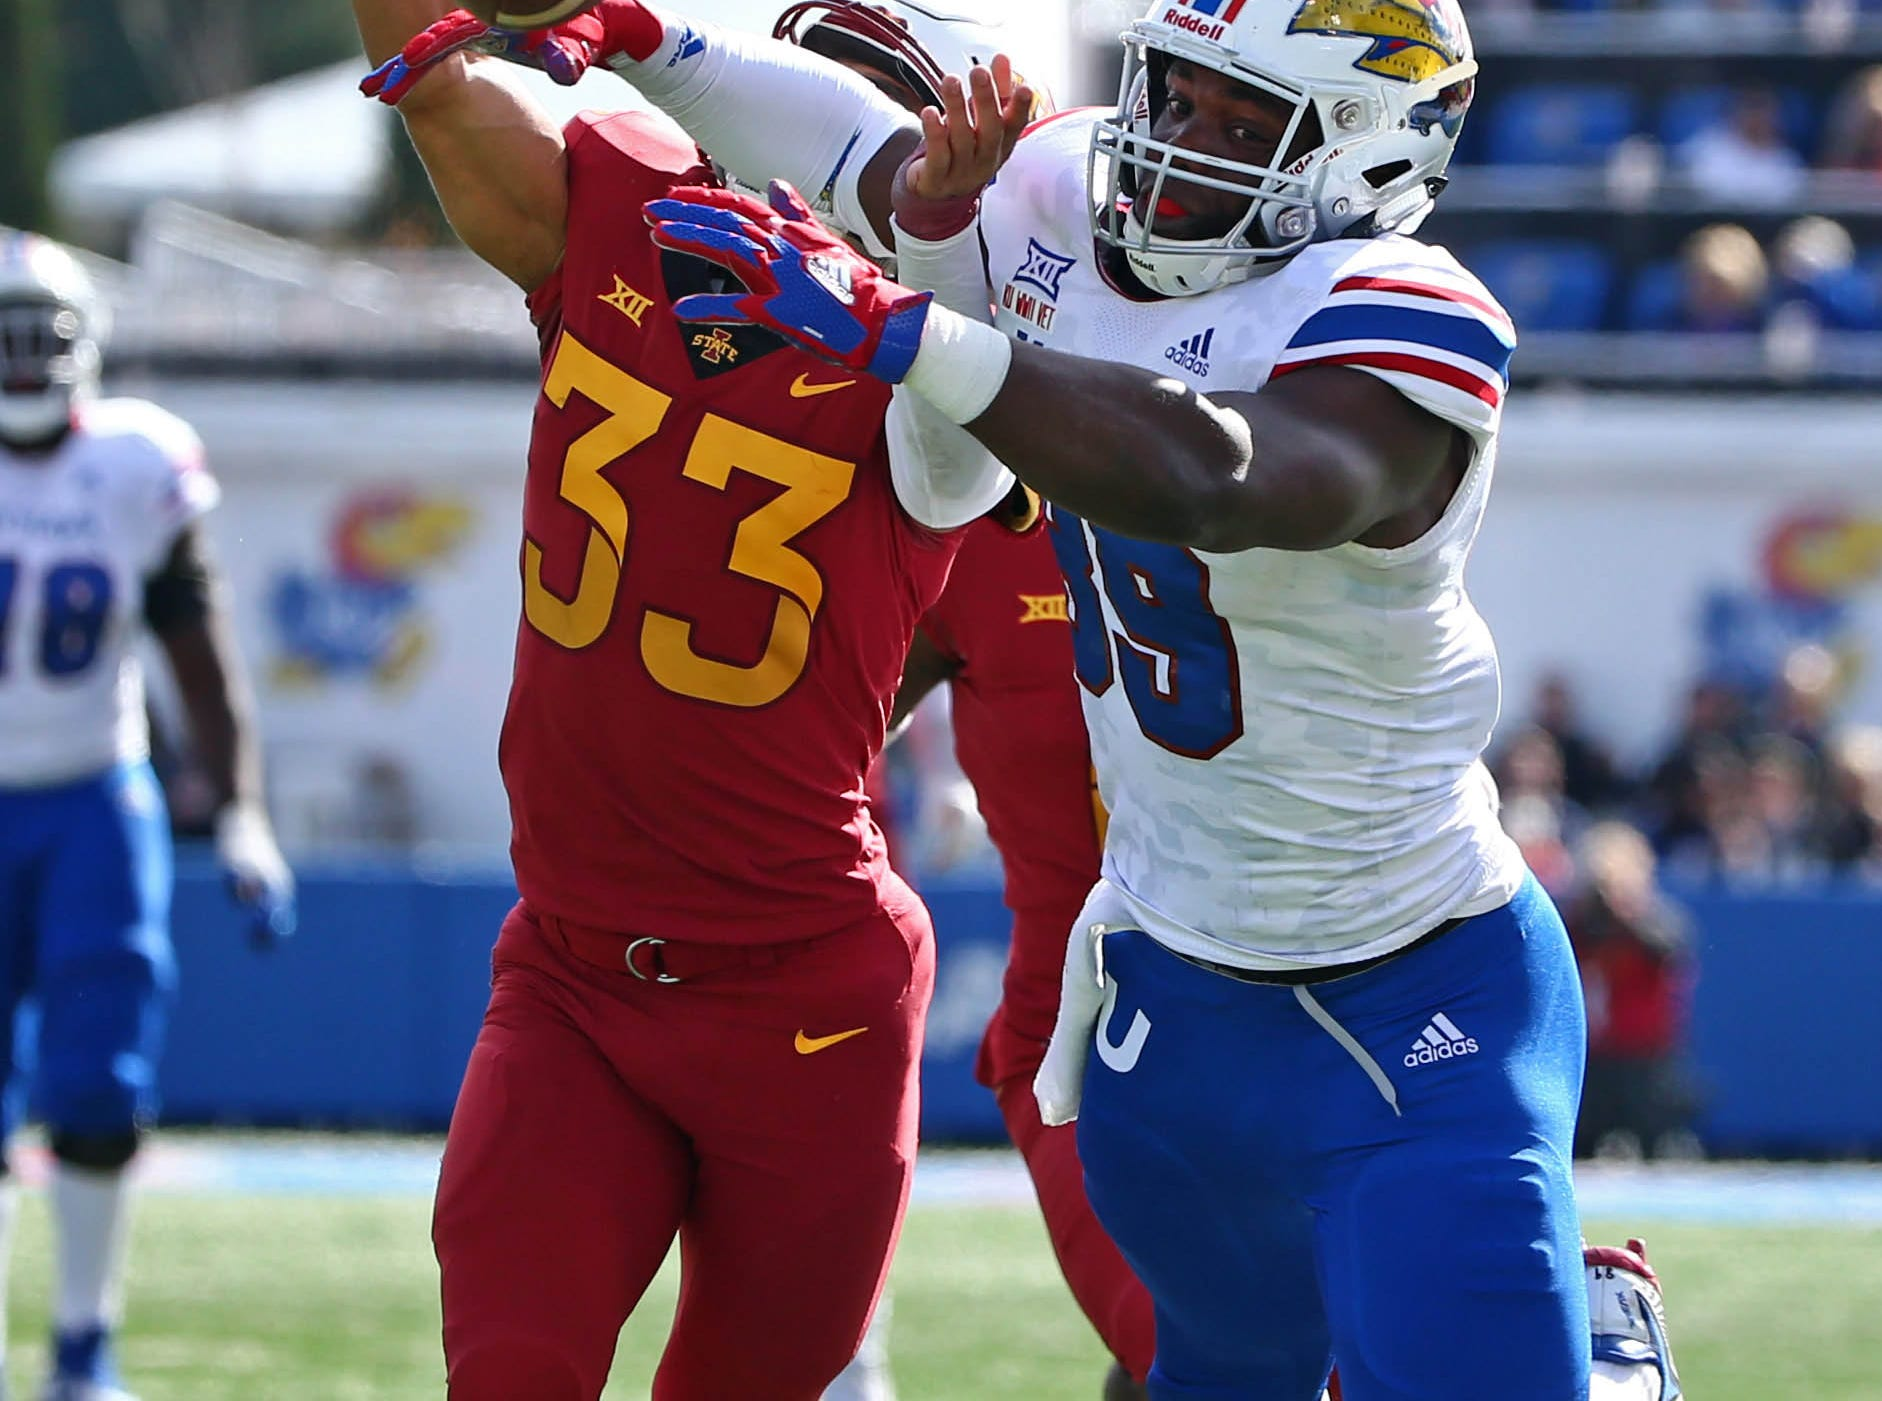 Nov 3, 2018; Lawrence, KS, USA; Kansas Jayhawks tight end Mavin Saunders (89) is unable to make the catch as Iowa State Cyclones defensive back Braxton Lewis (33) defends in the second half at Memorial Stadium.